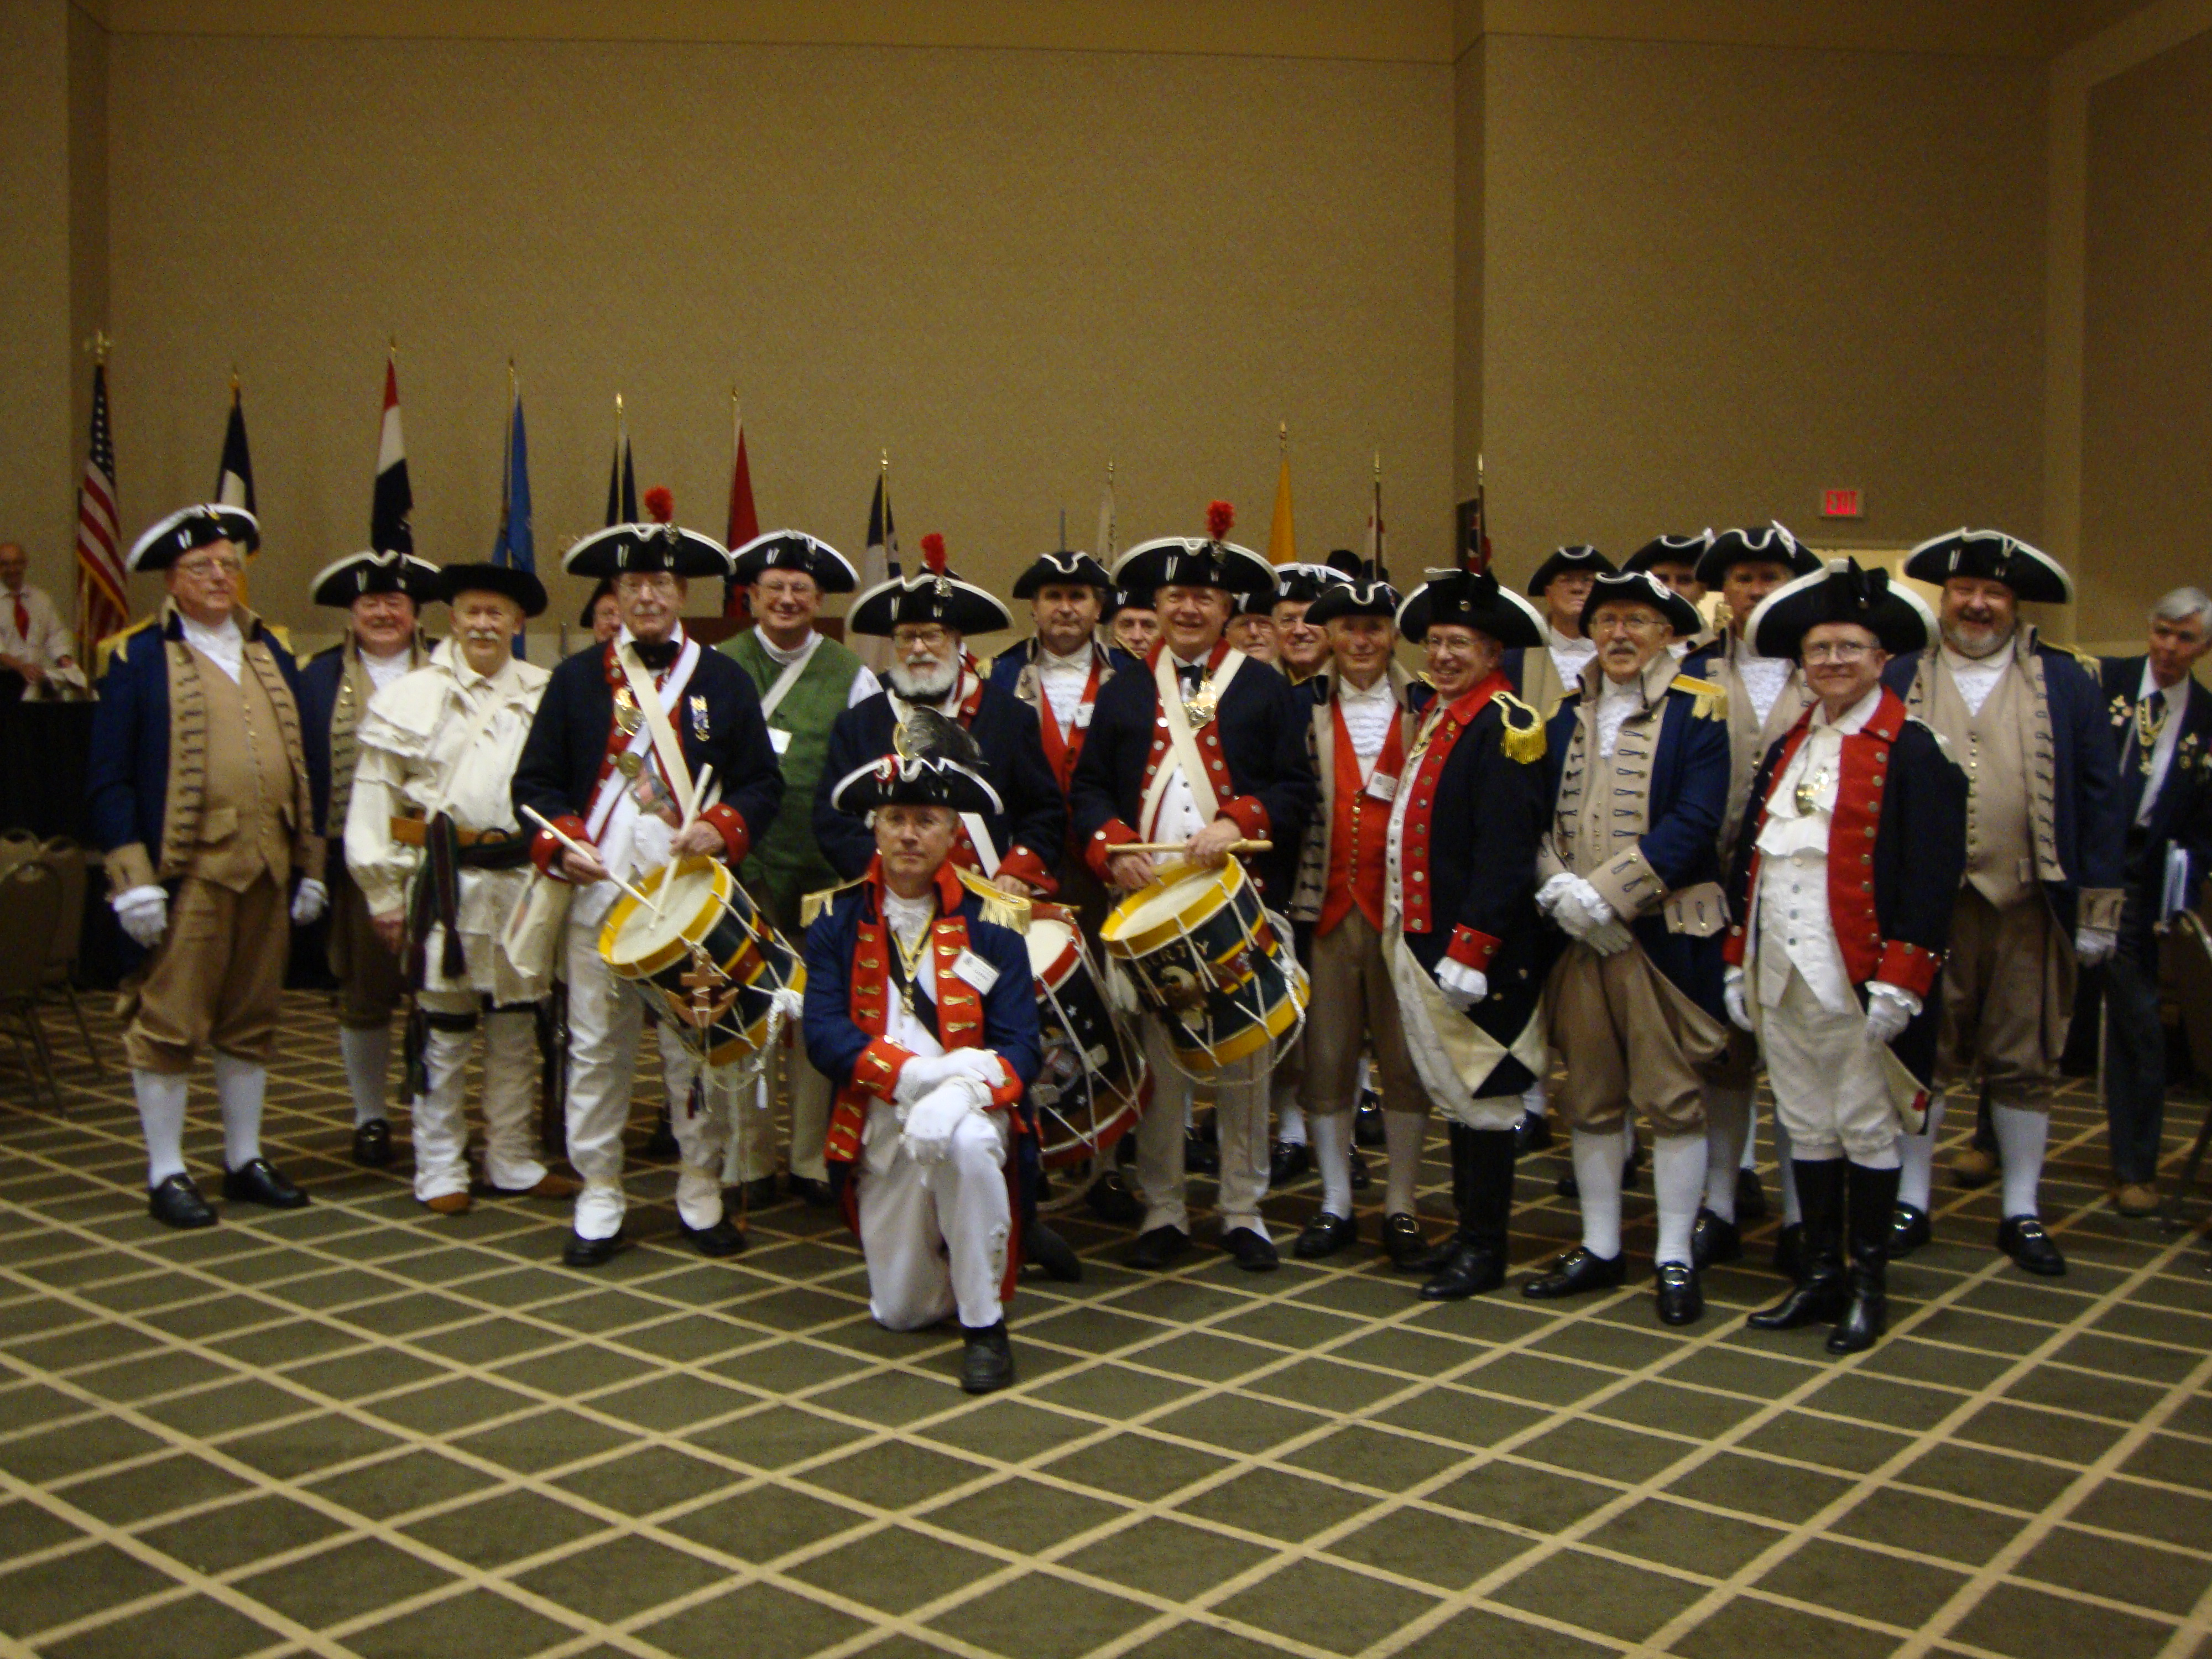 The South Central District Color Guard is shown here participating at the South Central District Annual Meeting at the Sheraton Overland Park Hotel, in Overland Park, Kansas on August 26-27, 2011